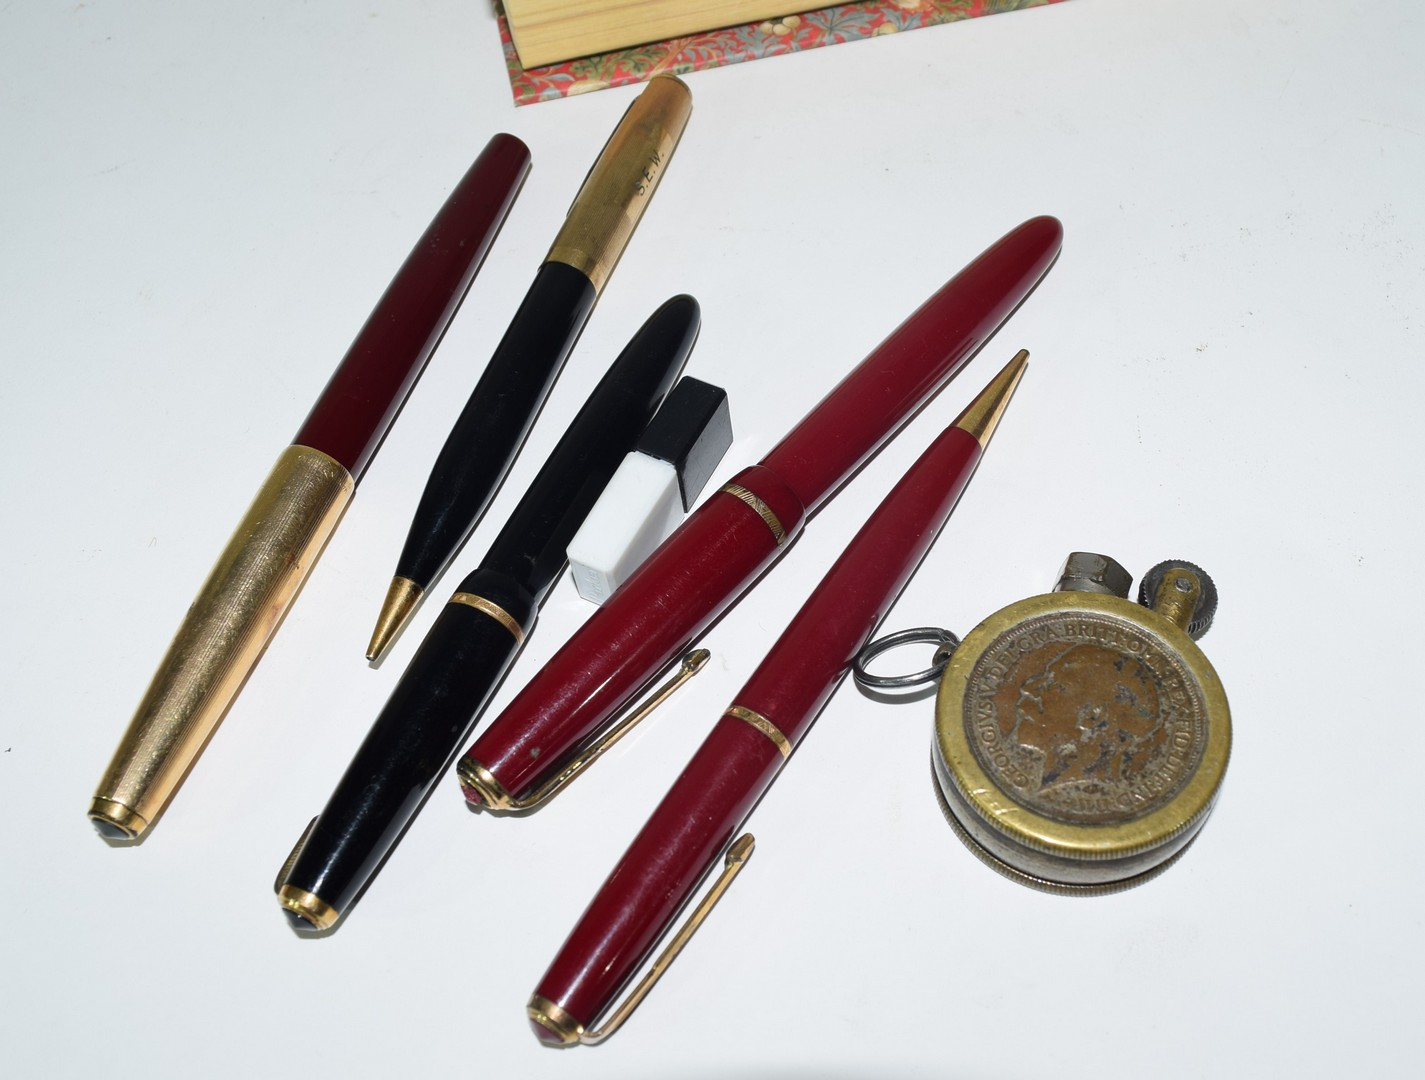 Small box containing quantity of fountain pens - Image 4 of 4